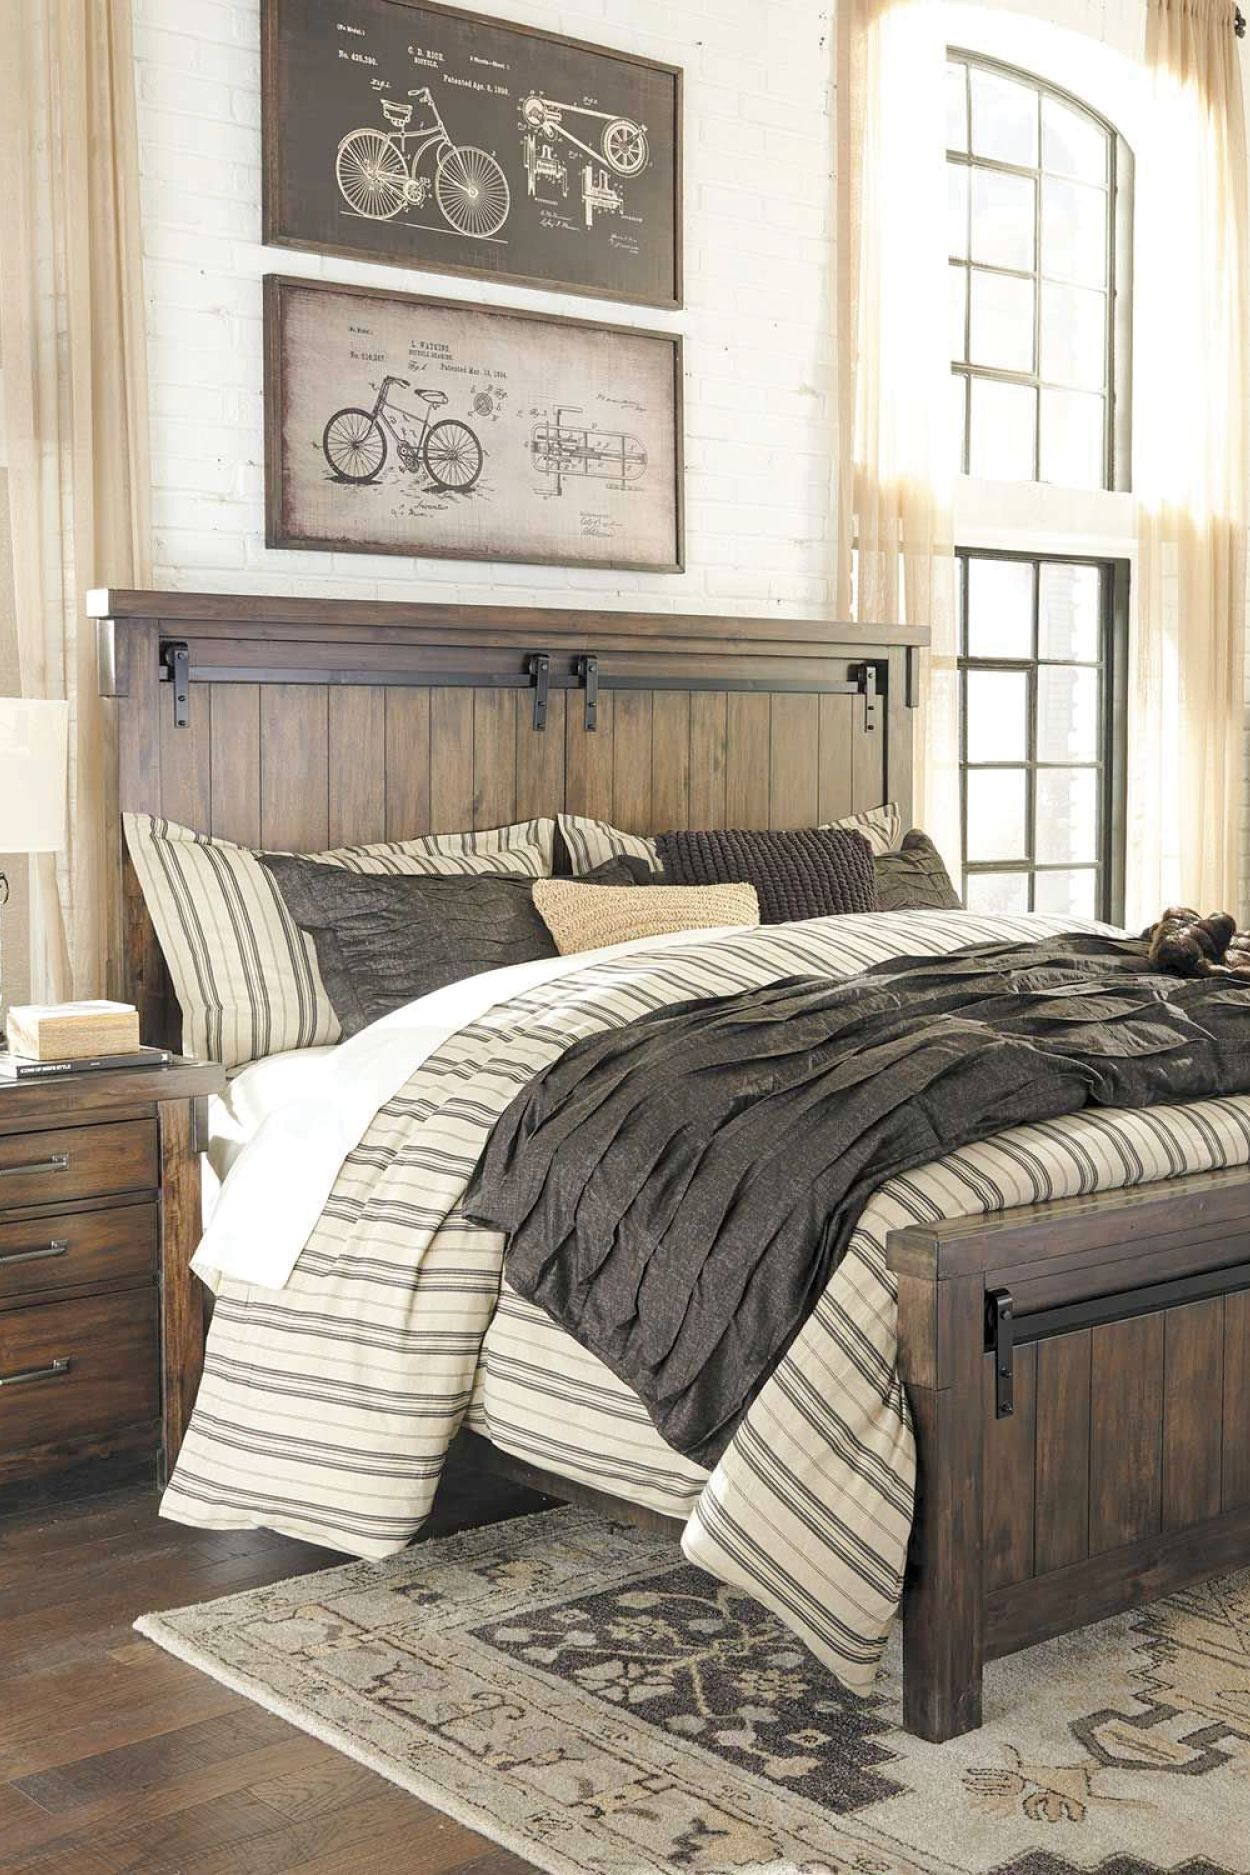 The Lakeleigh 5 Piece Bedroom Set By Ashley Furniture Combines Rustic Style And Urban Cool To Create A Warm Inviting That S Filled